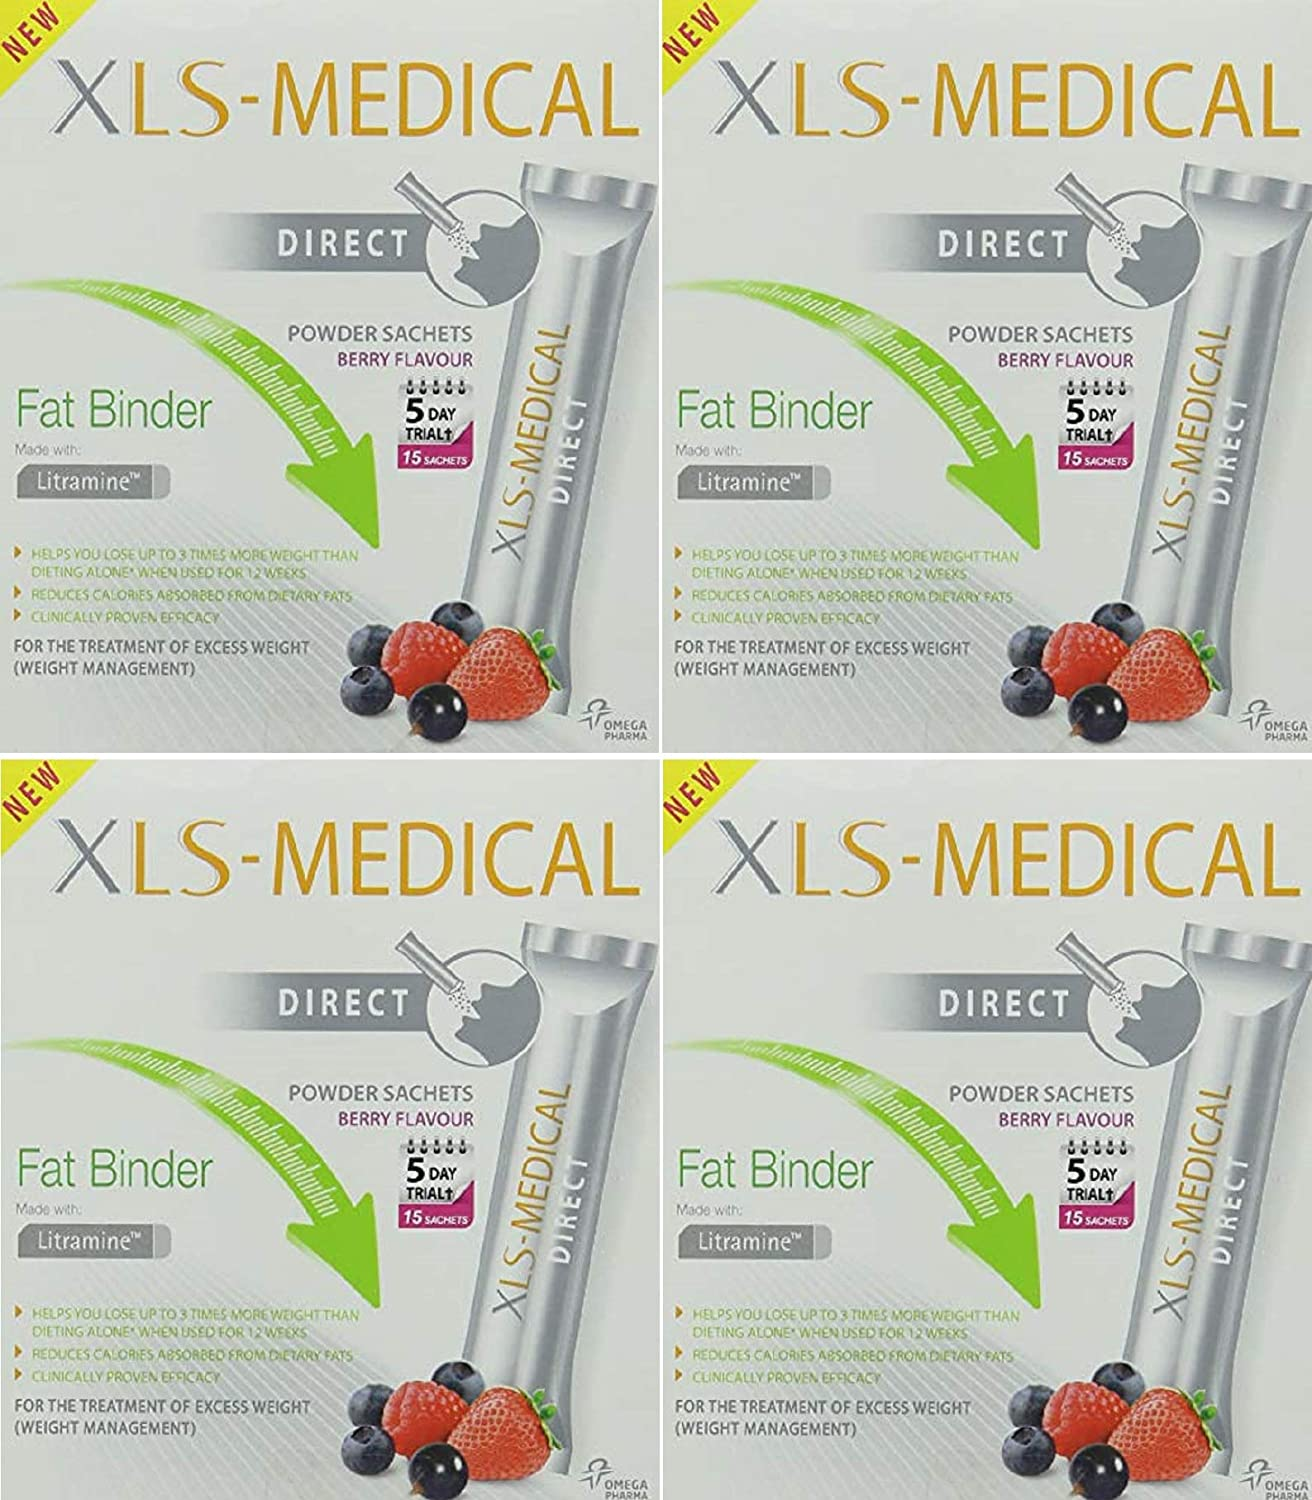 XLS-Medical Pack of 30 Fat Binder Weight Loss Tablets Expiry